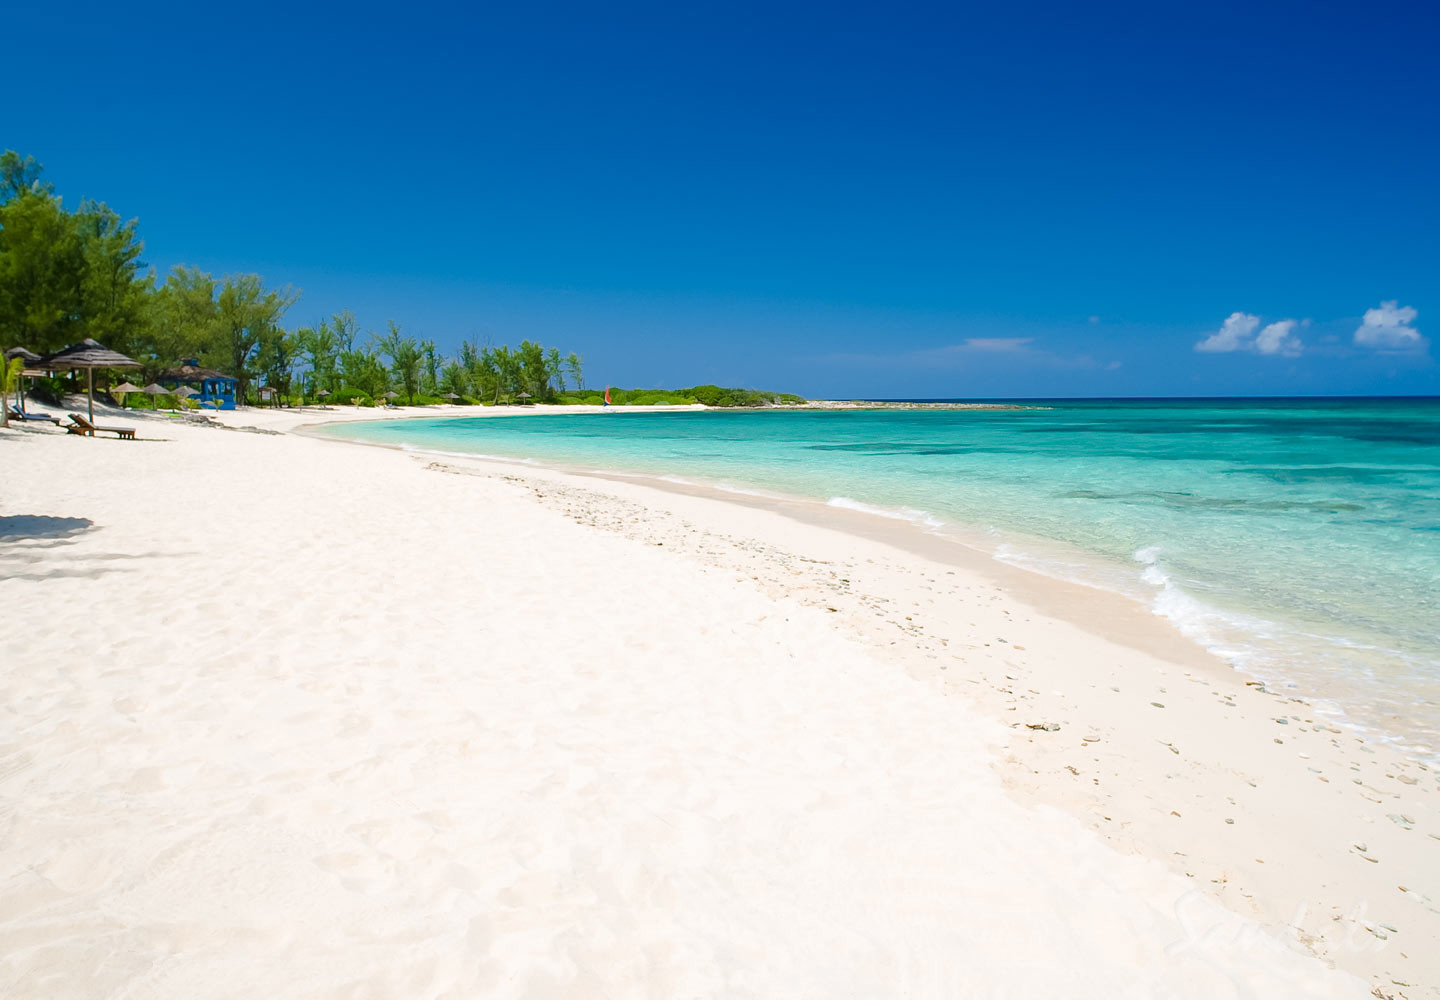 Travel Agency All-Inclusive Resort Sandals Royal Bahamian 015